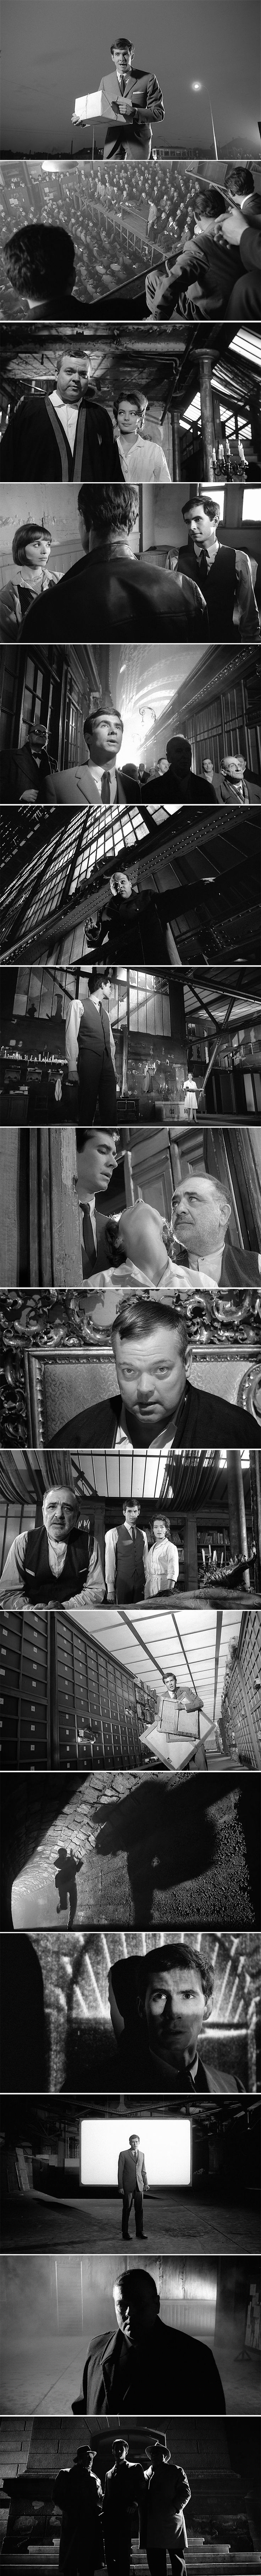 The Trial (1962) Directed by Orson Welles. Cinematography by Edmond Richard.